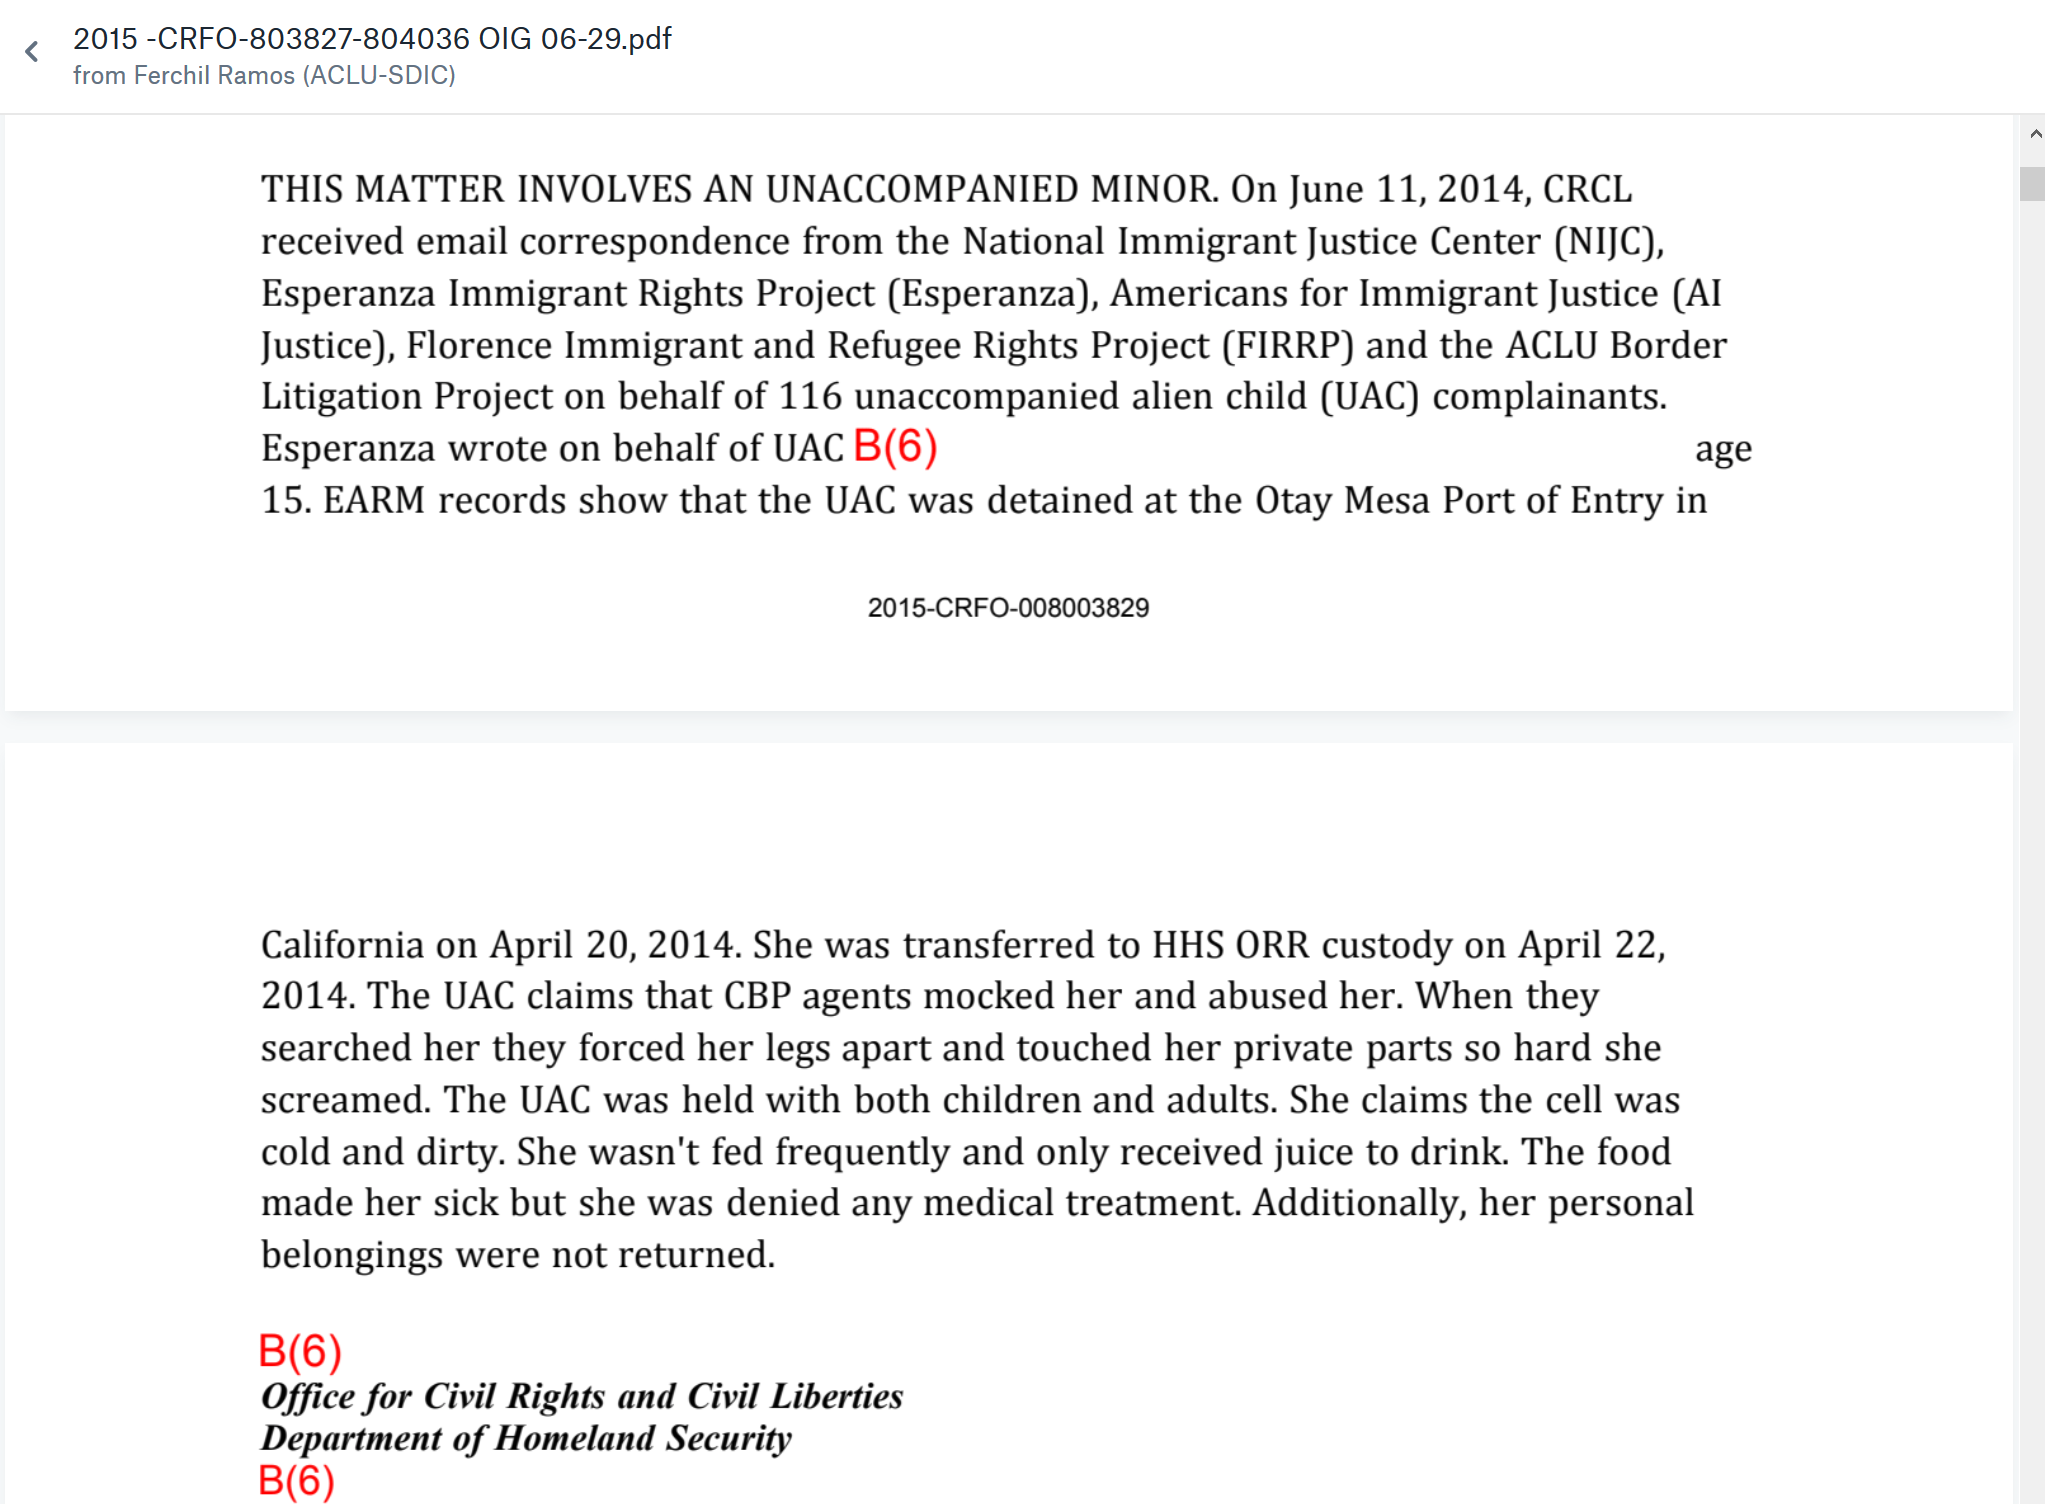 Excerpts of ACLU Investigation